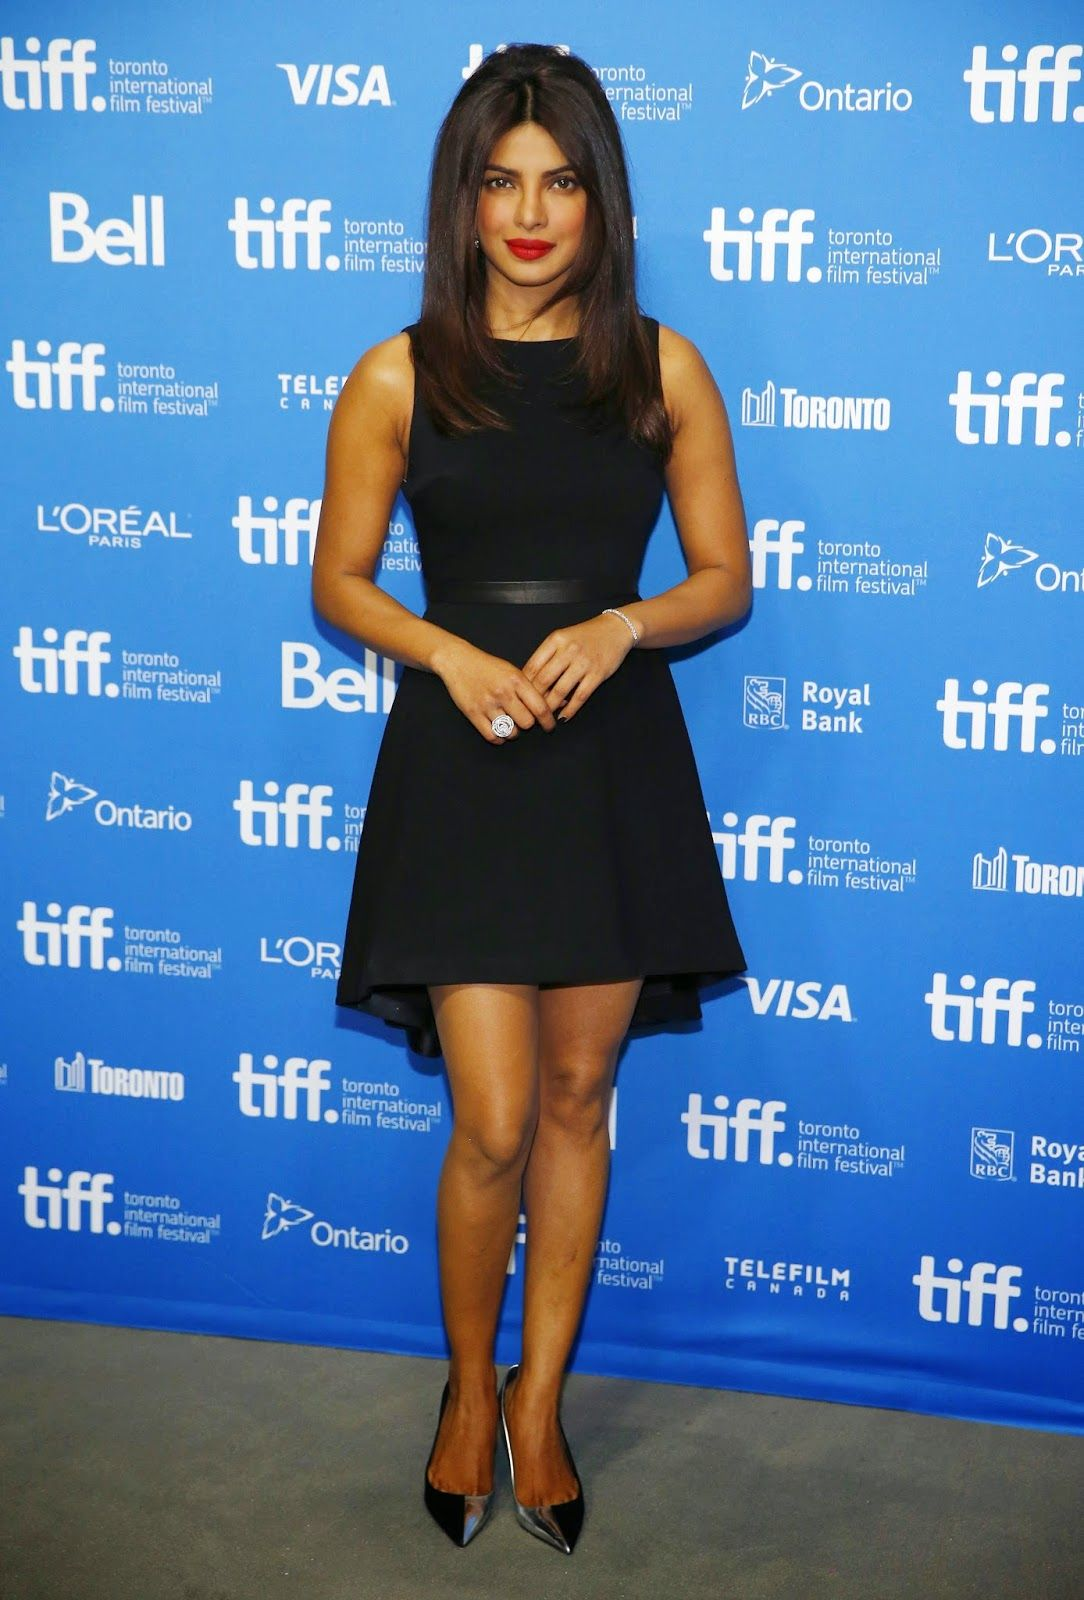 Priyanka Chopra Looks Smoking Hot In Black Dress At Film 'May Kom ...